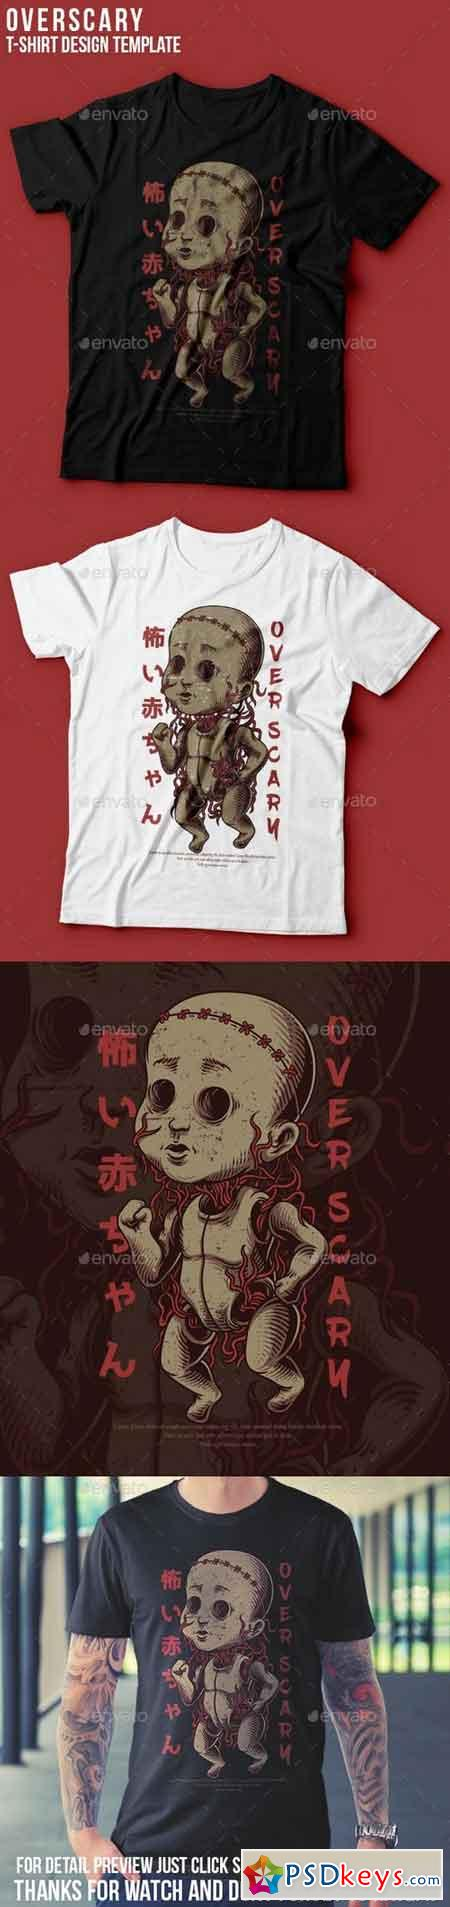 Over Scary T-Shirt Design 22765586